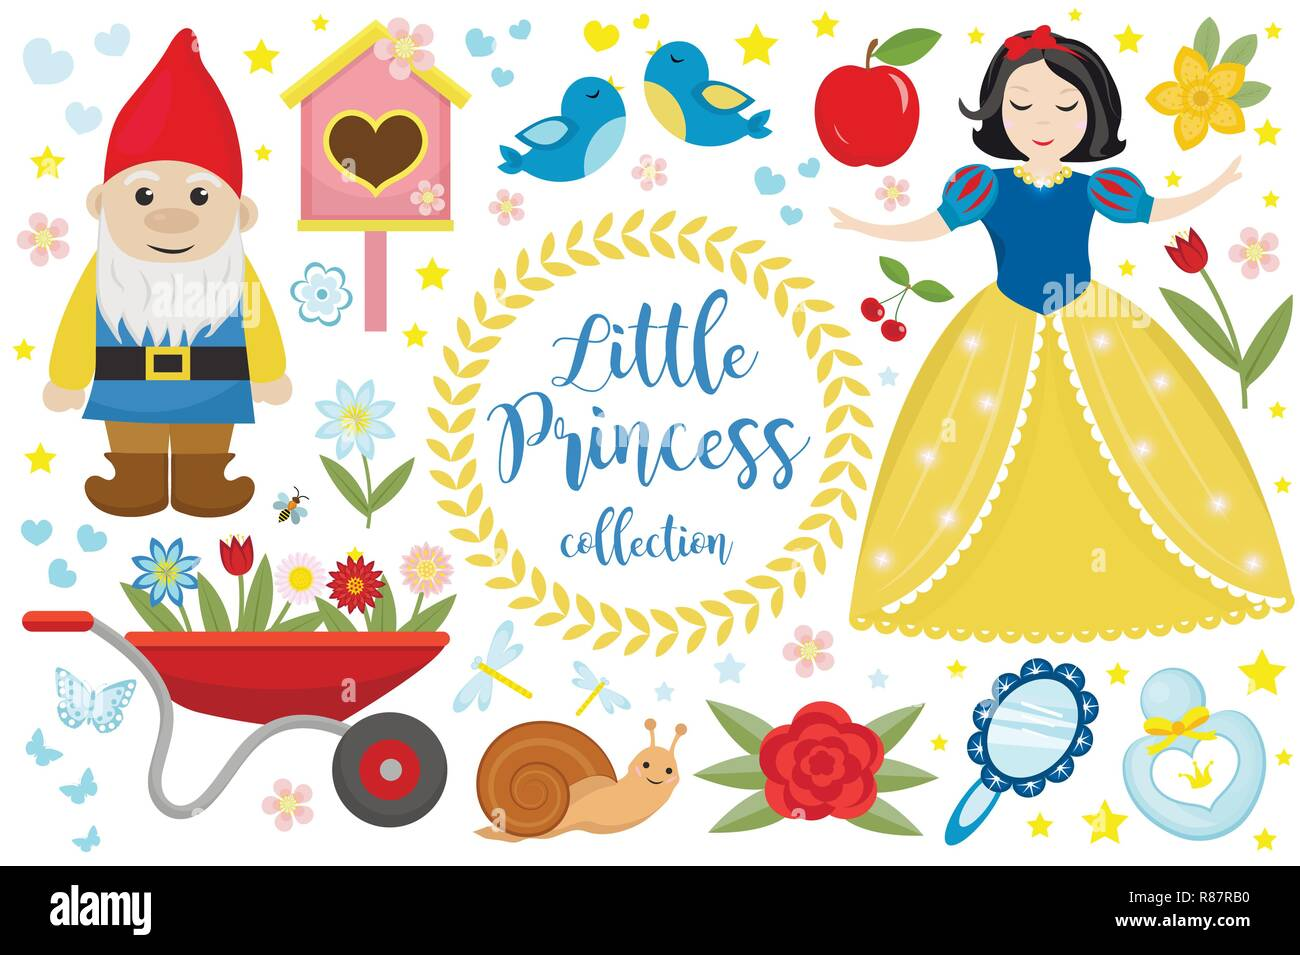 Snow White Illustration Story Stock Photos & Snow White Illustration